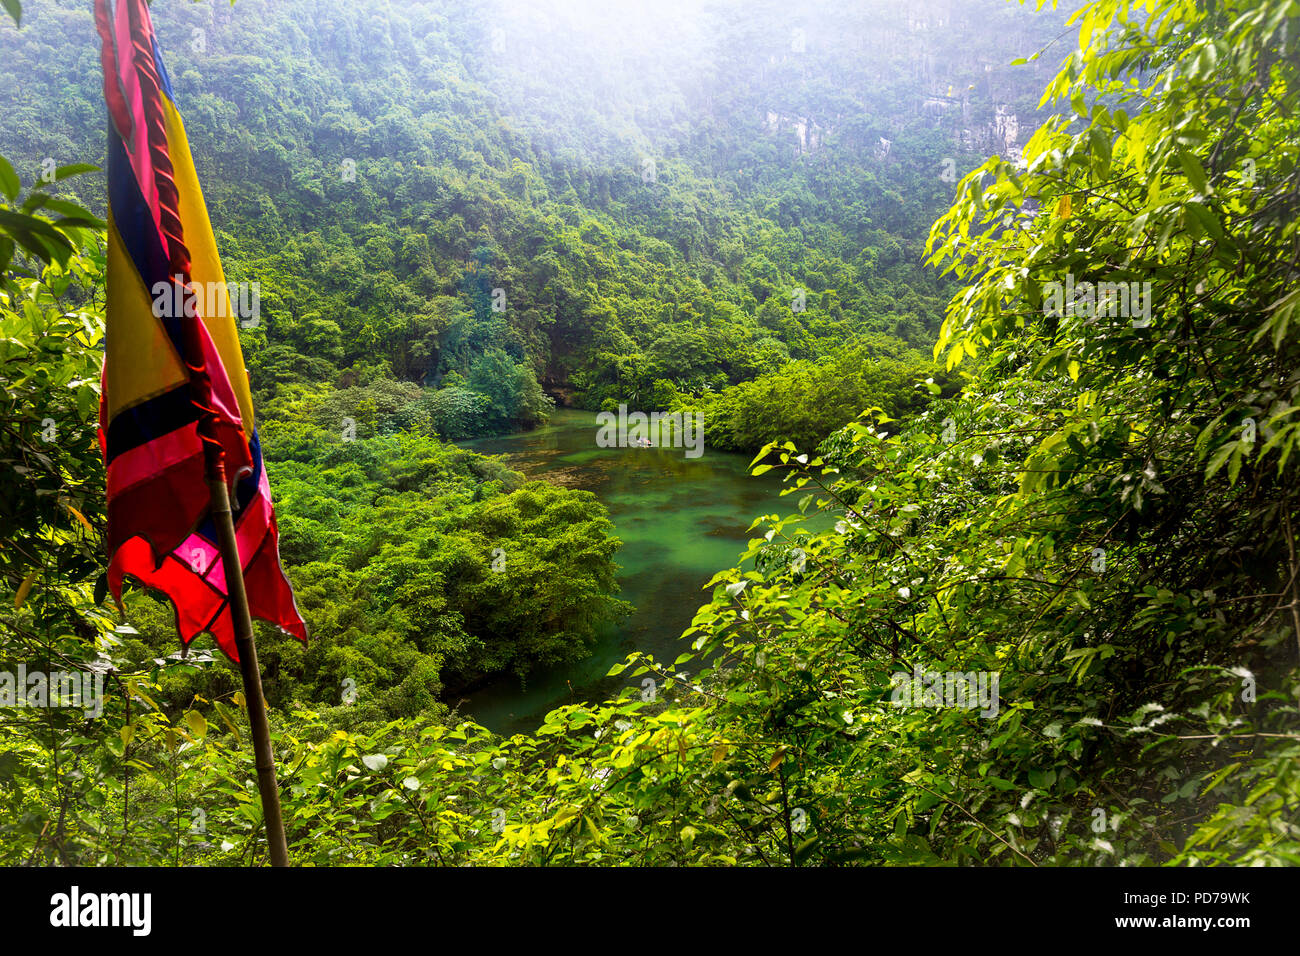 Red flag in the foreground of a high scenic look out point over the lake and other moutnains in the back with mist, rain, fog. - Stock Image